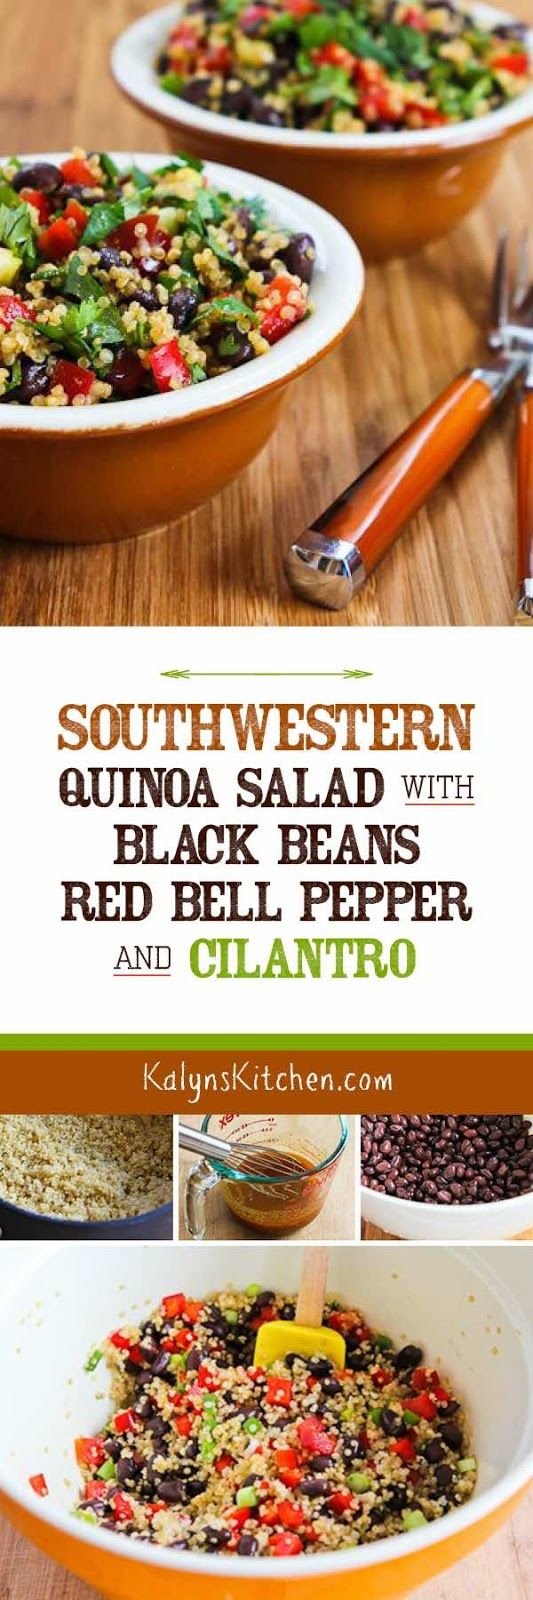 This Southwestern Quinoa Salad with Black Beans, Red Bell Pepper, and ...